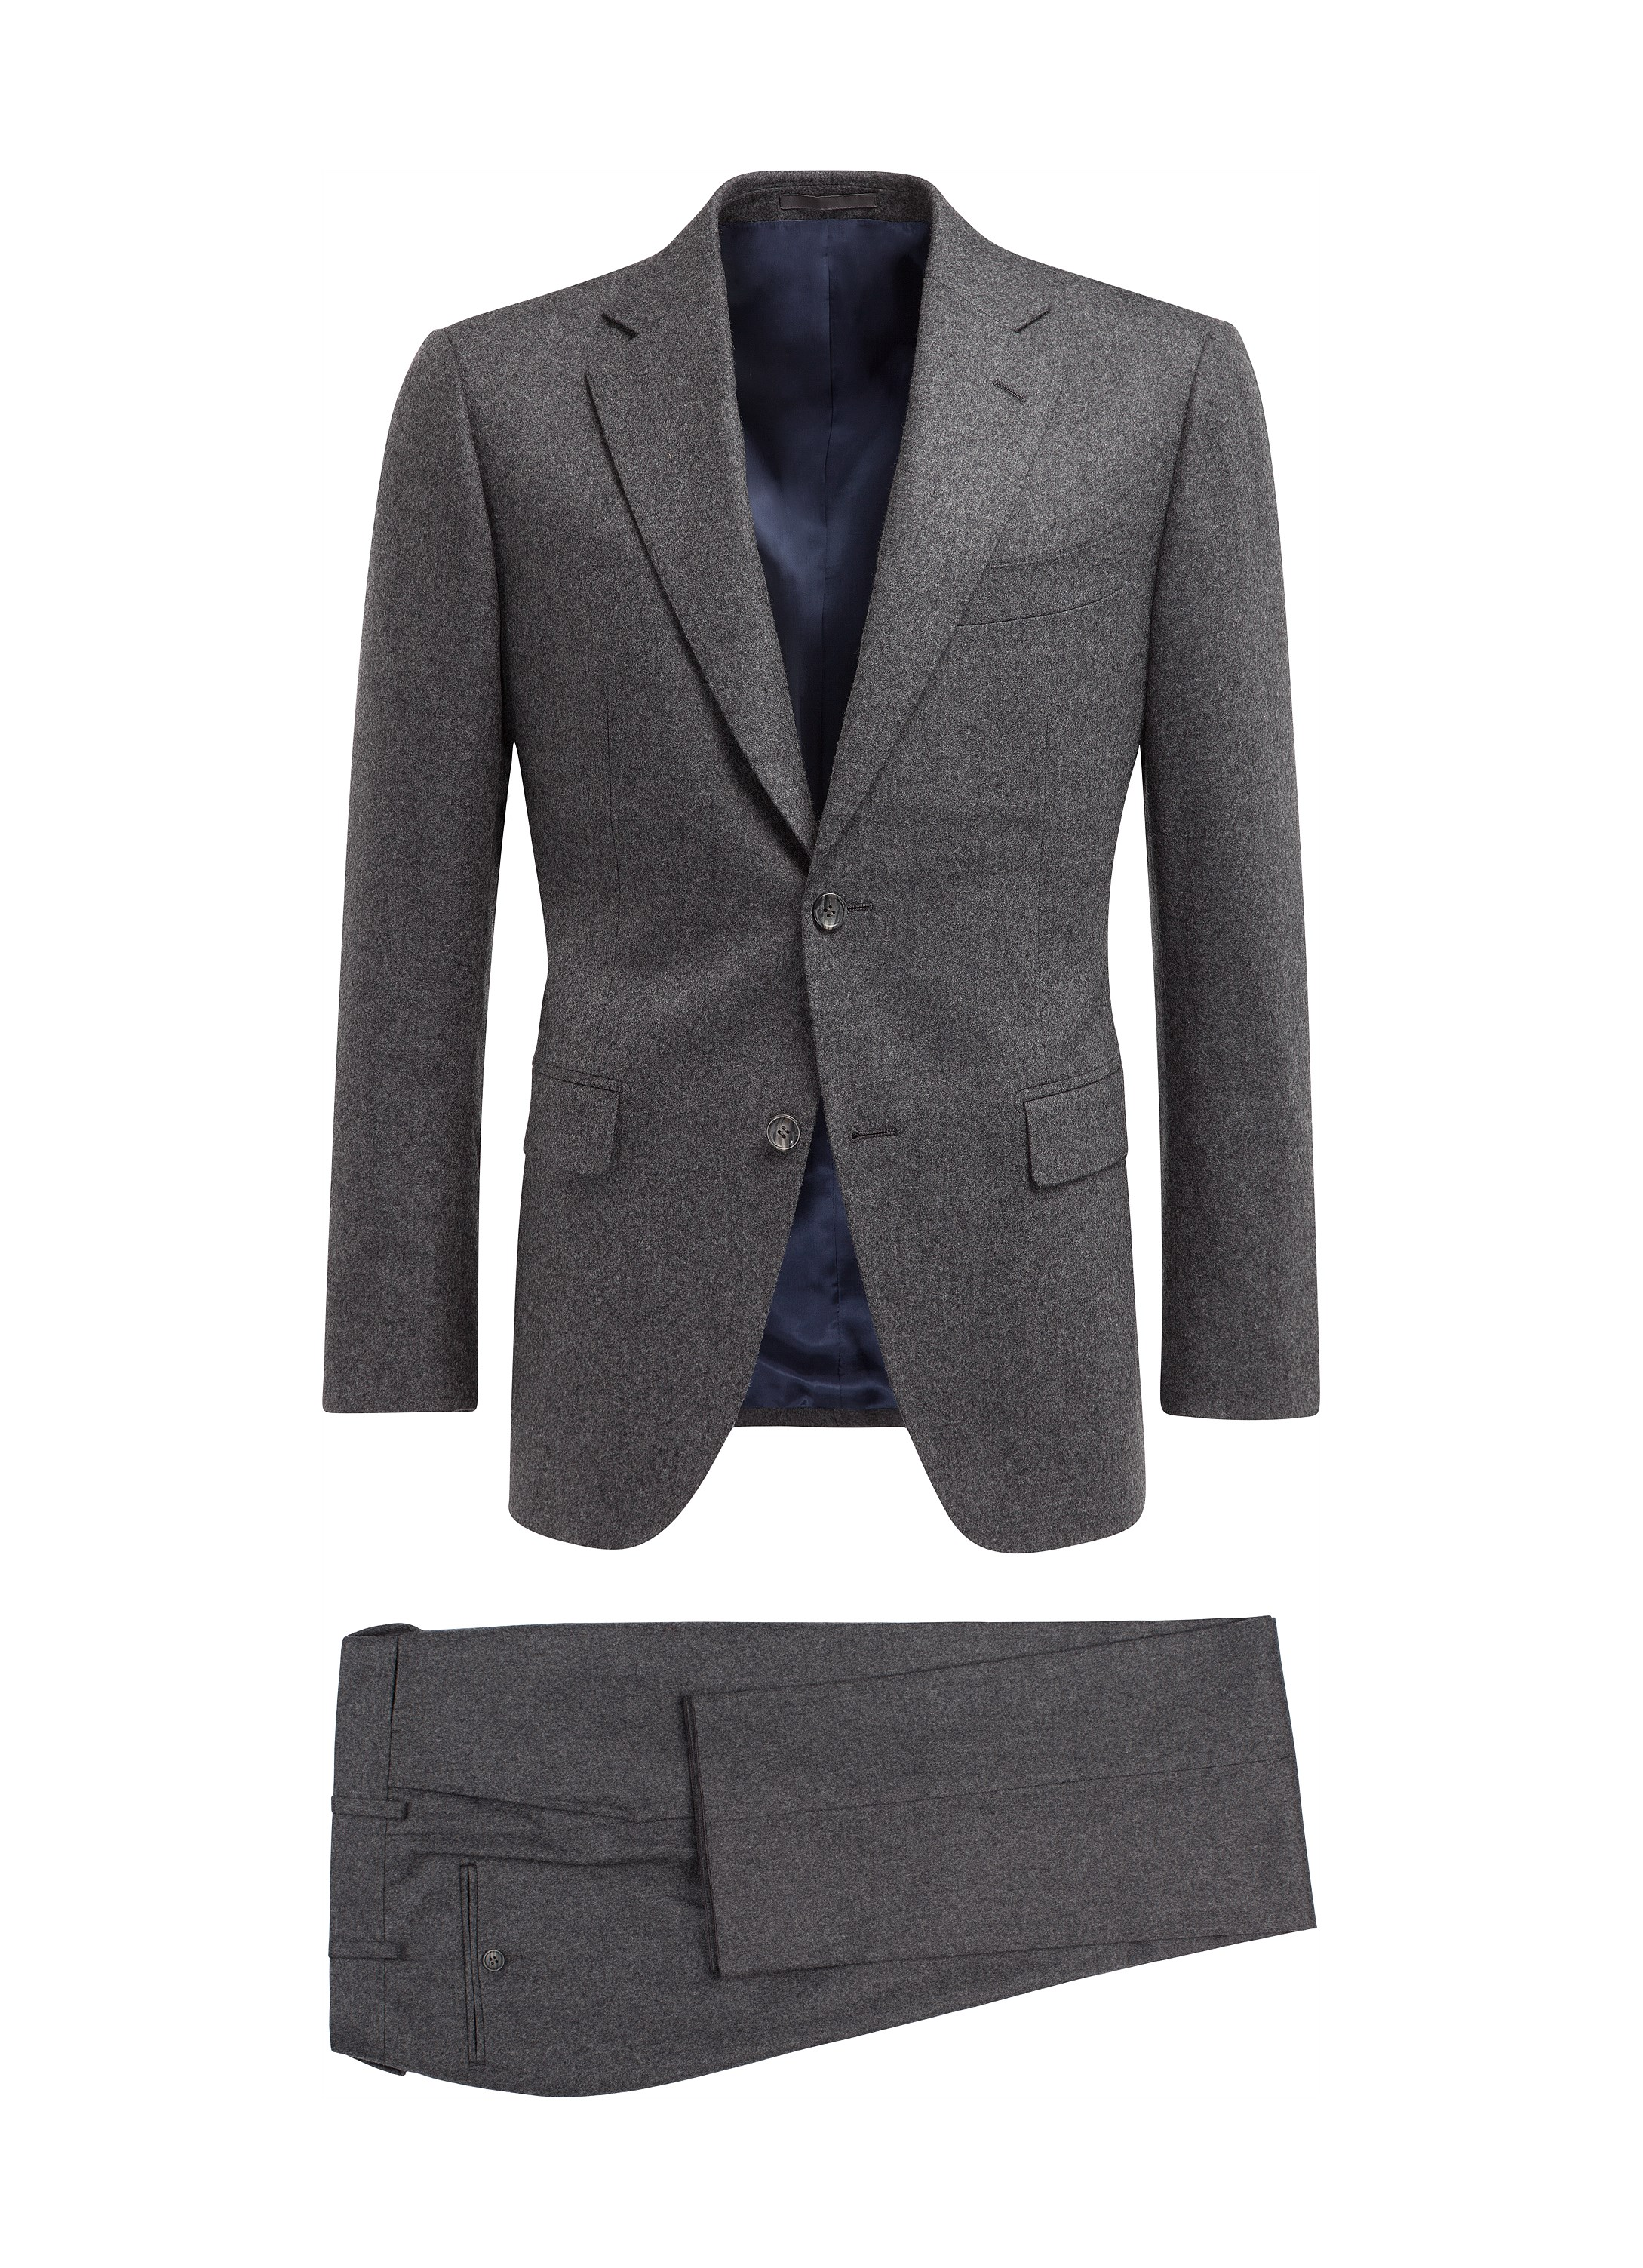 http://statics.suitsupply.com/images/products/Suits/zoom/Suits_Grey_Plain_Napoli_P4732_Suitsupply_Online_Store_5.jpg